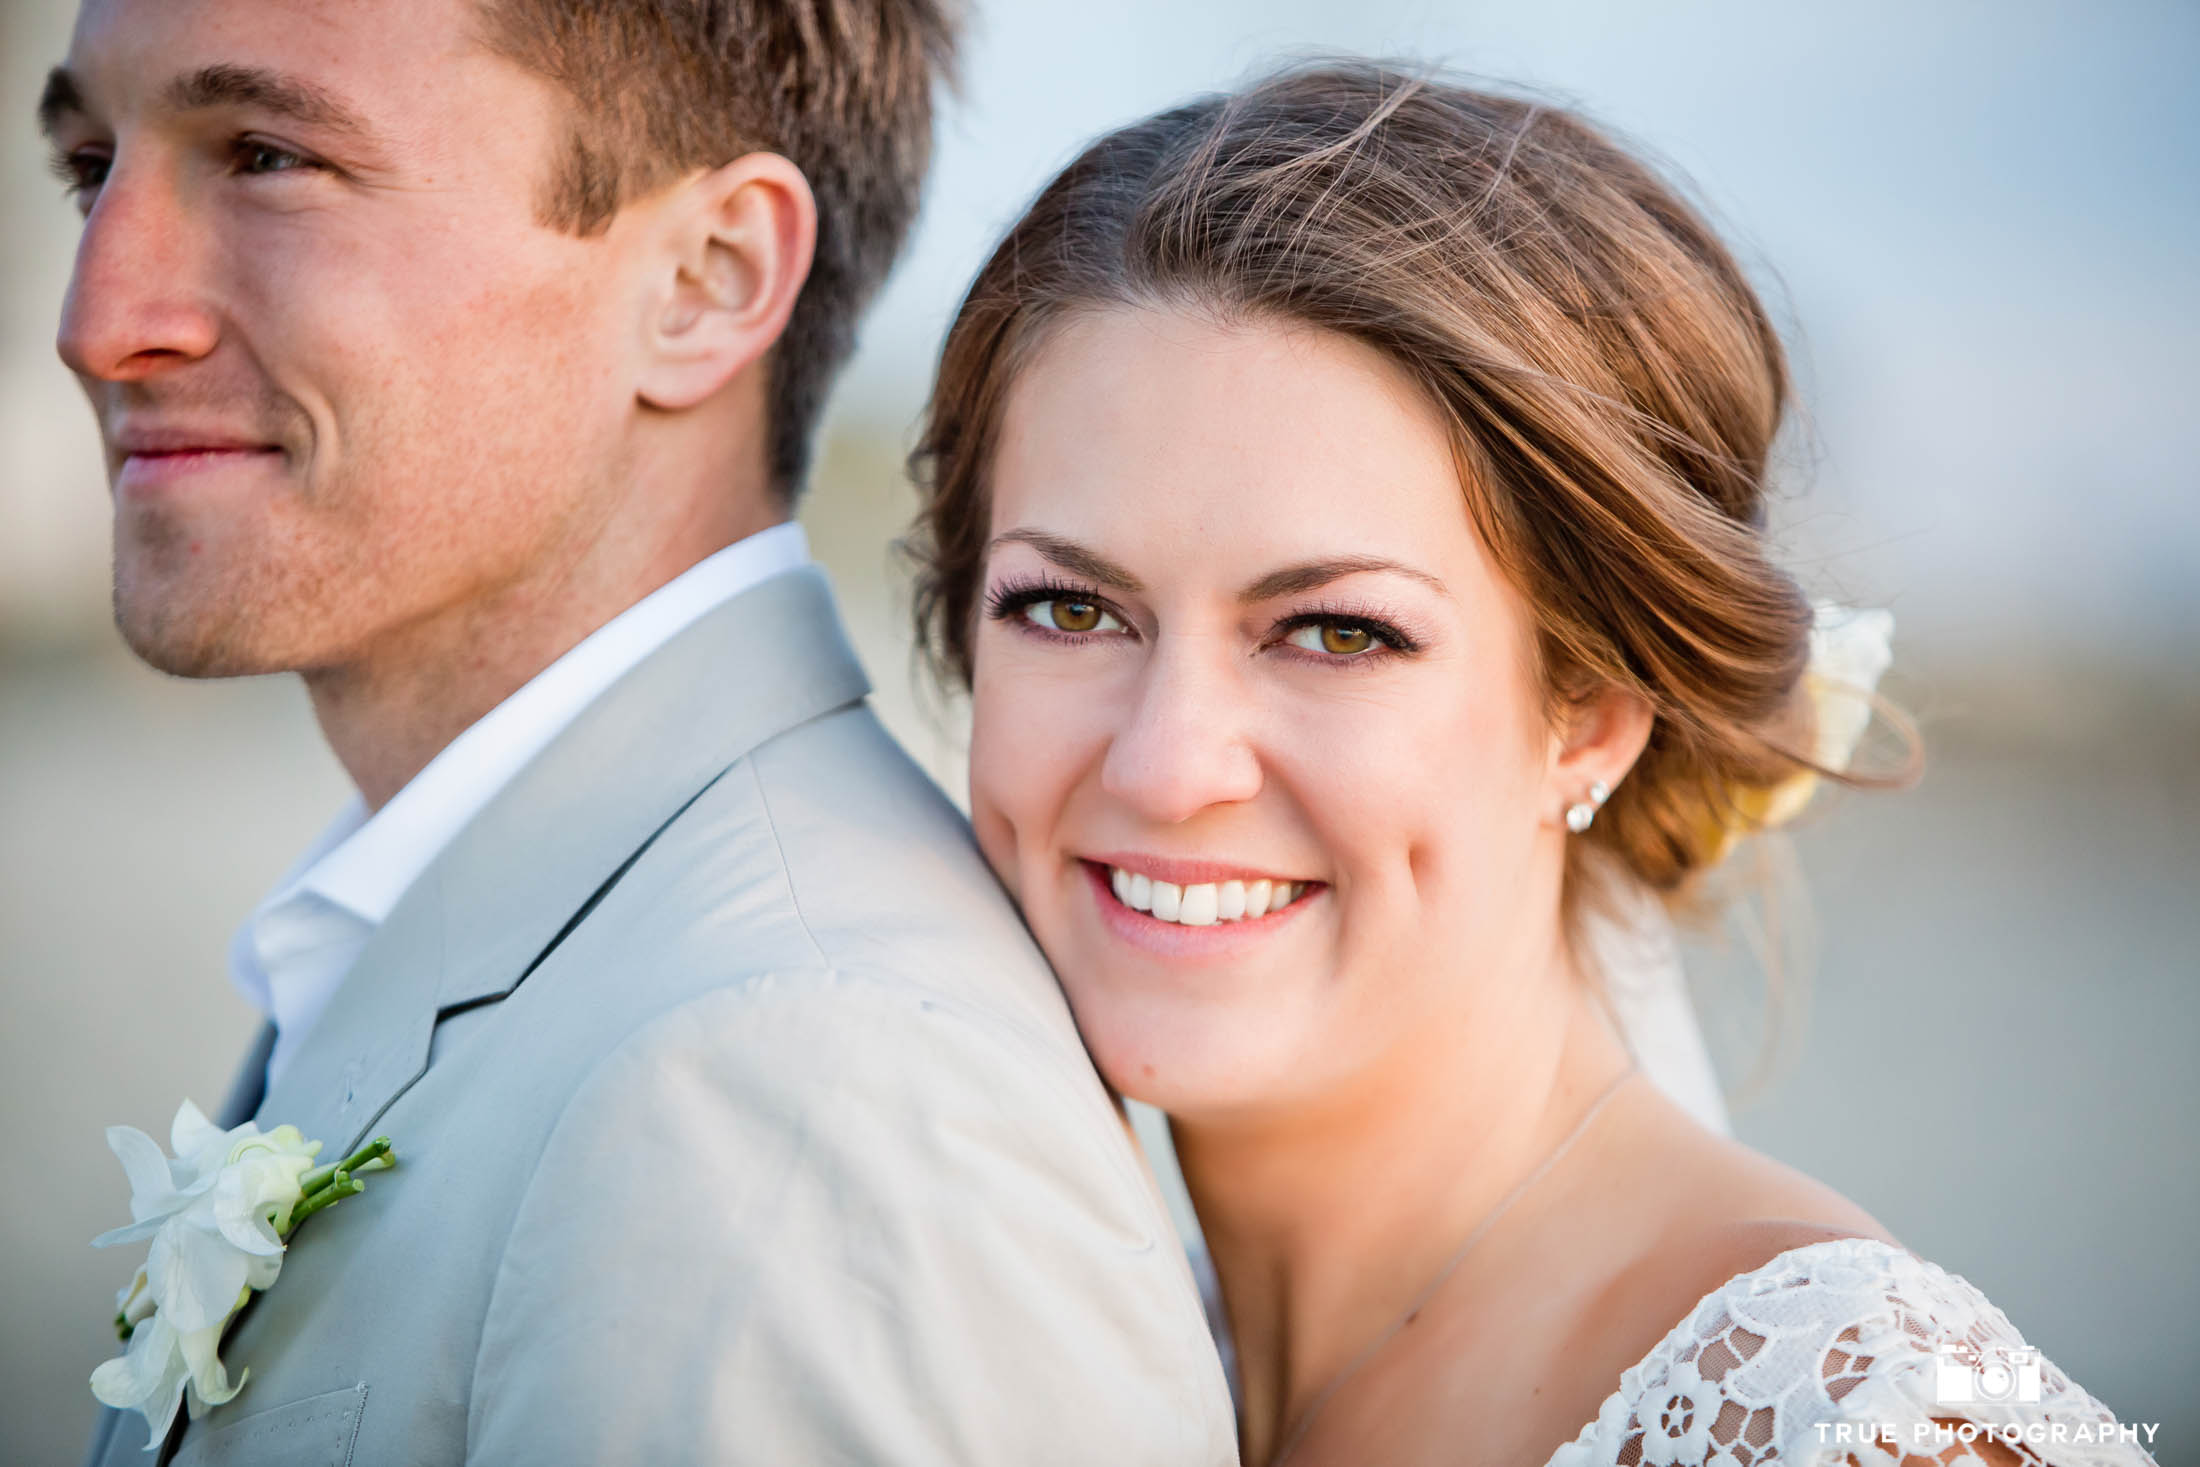 Coronado beach bride and groom closeup portrait